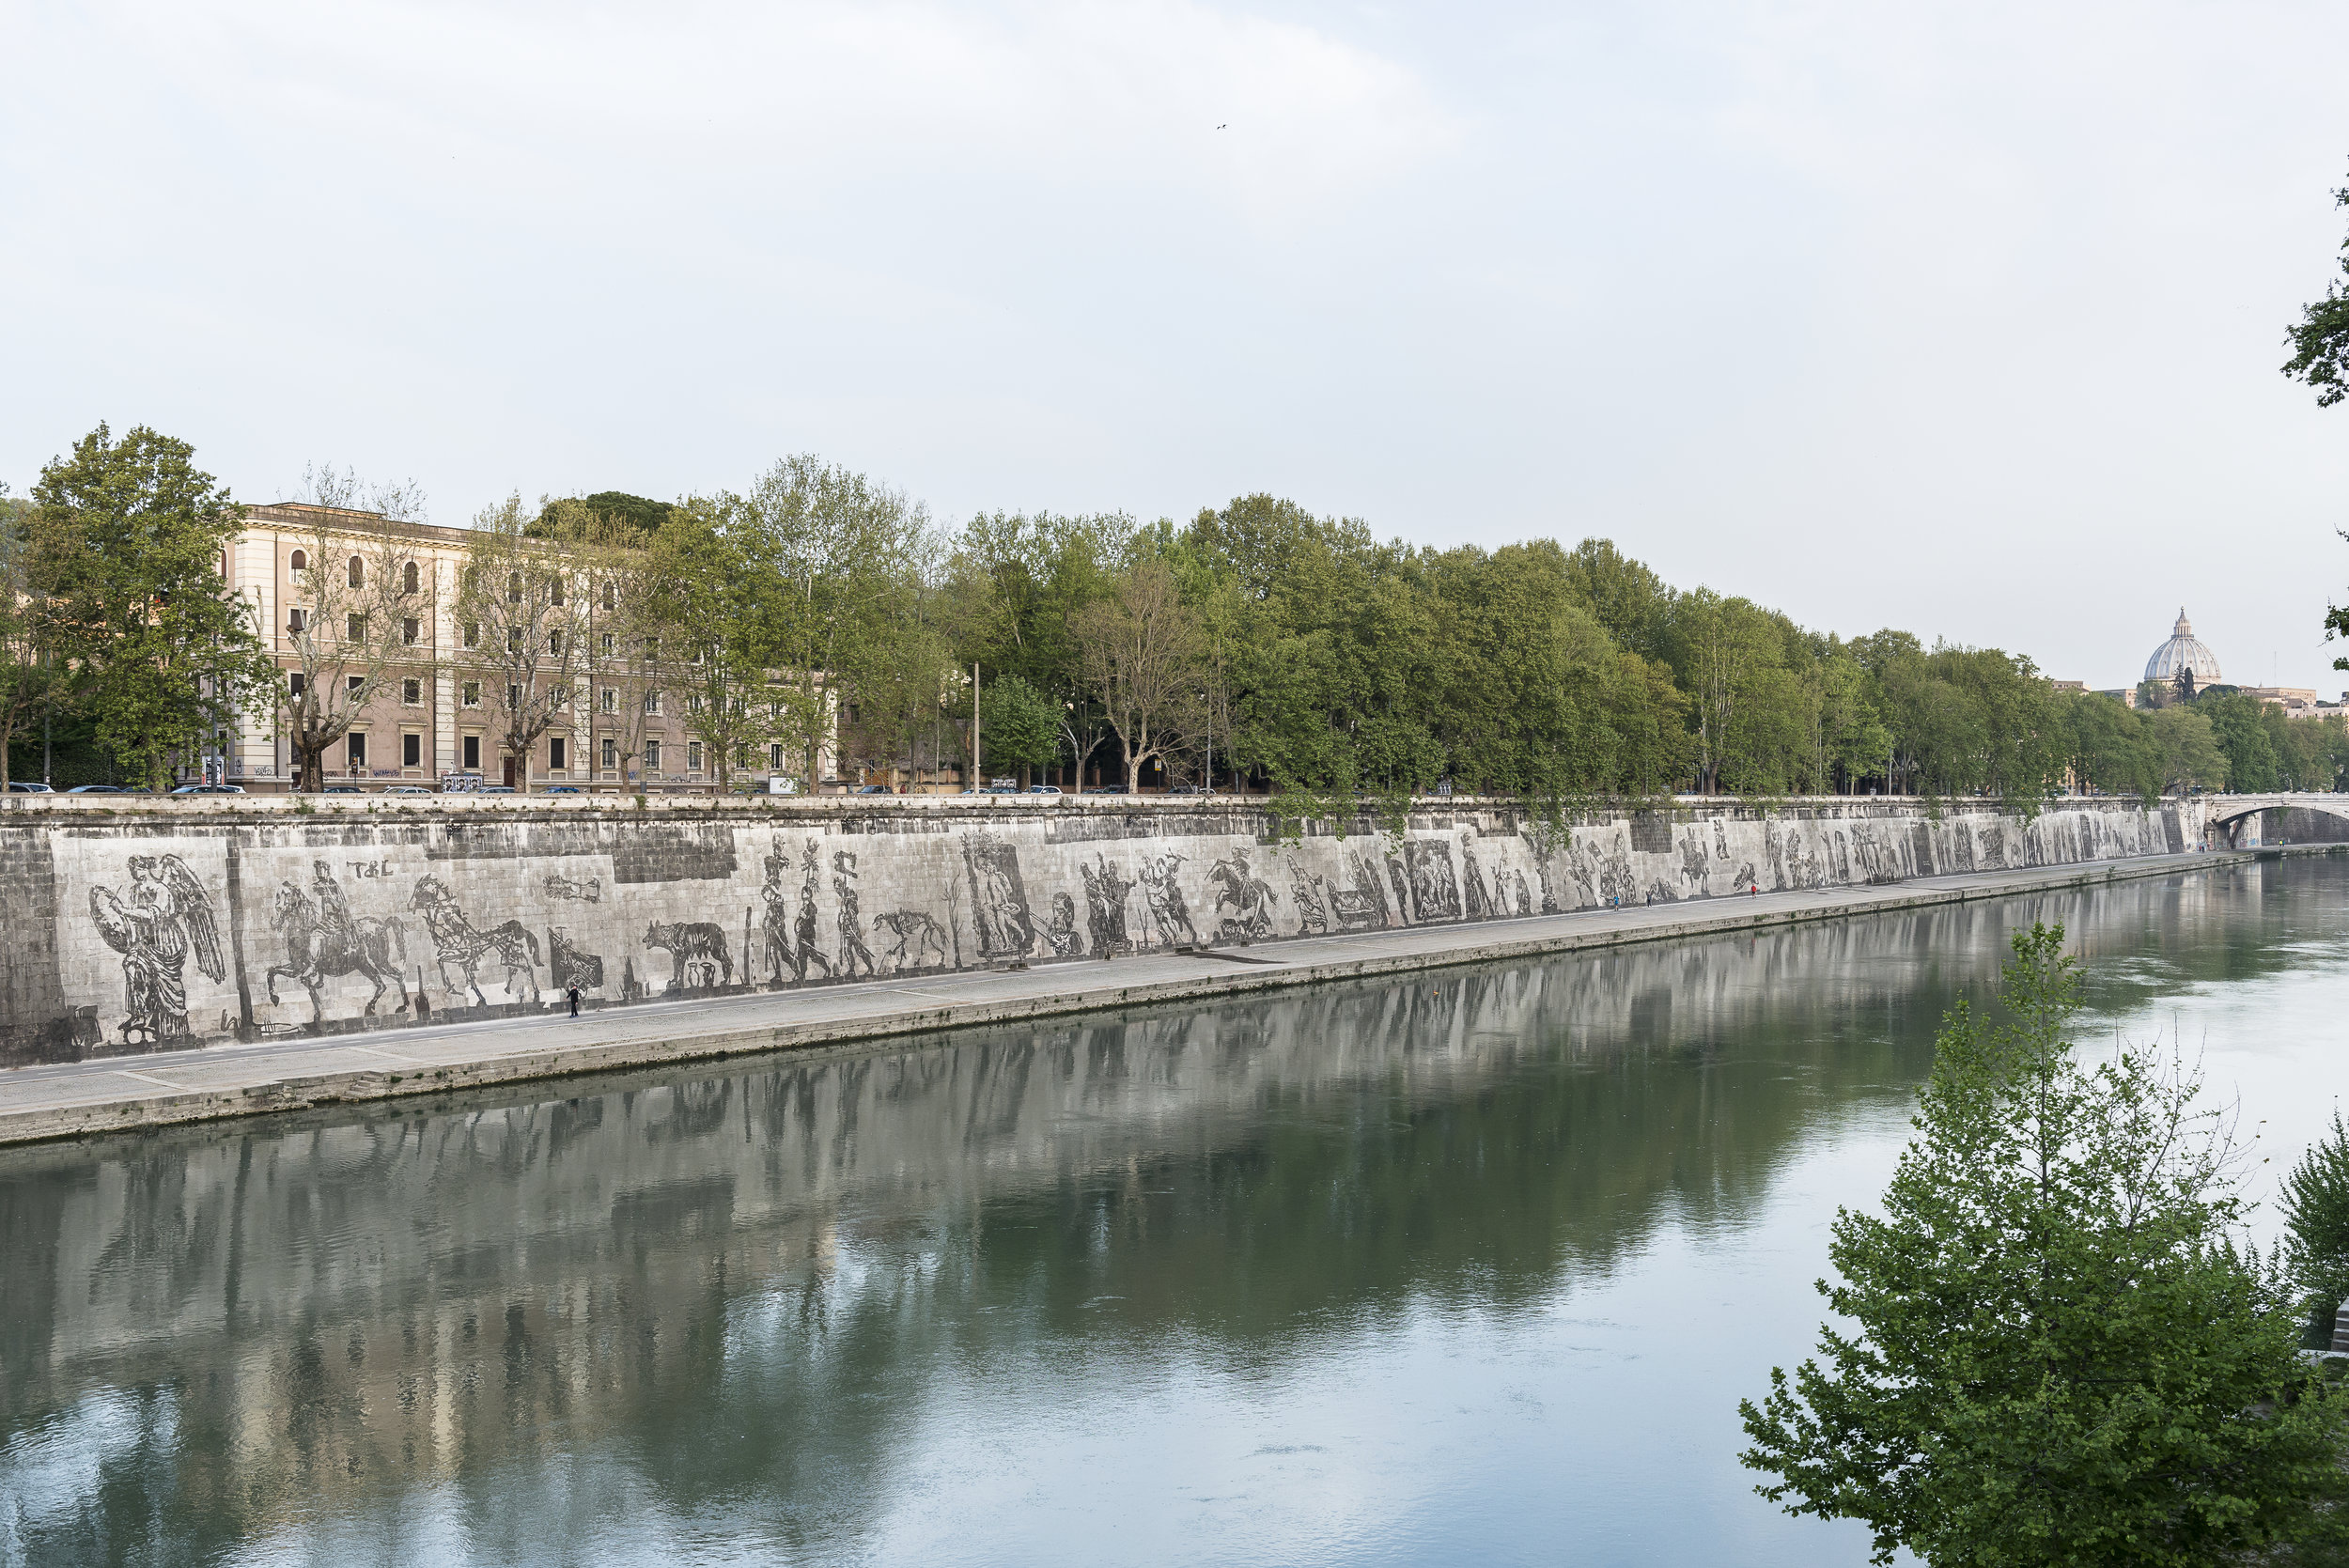 View from across the Tiber  , April 12, 2016. Photo by S. Luciano. Courtesy of   Tevereterno.